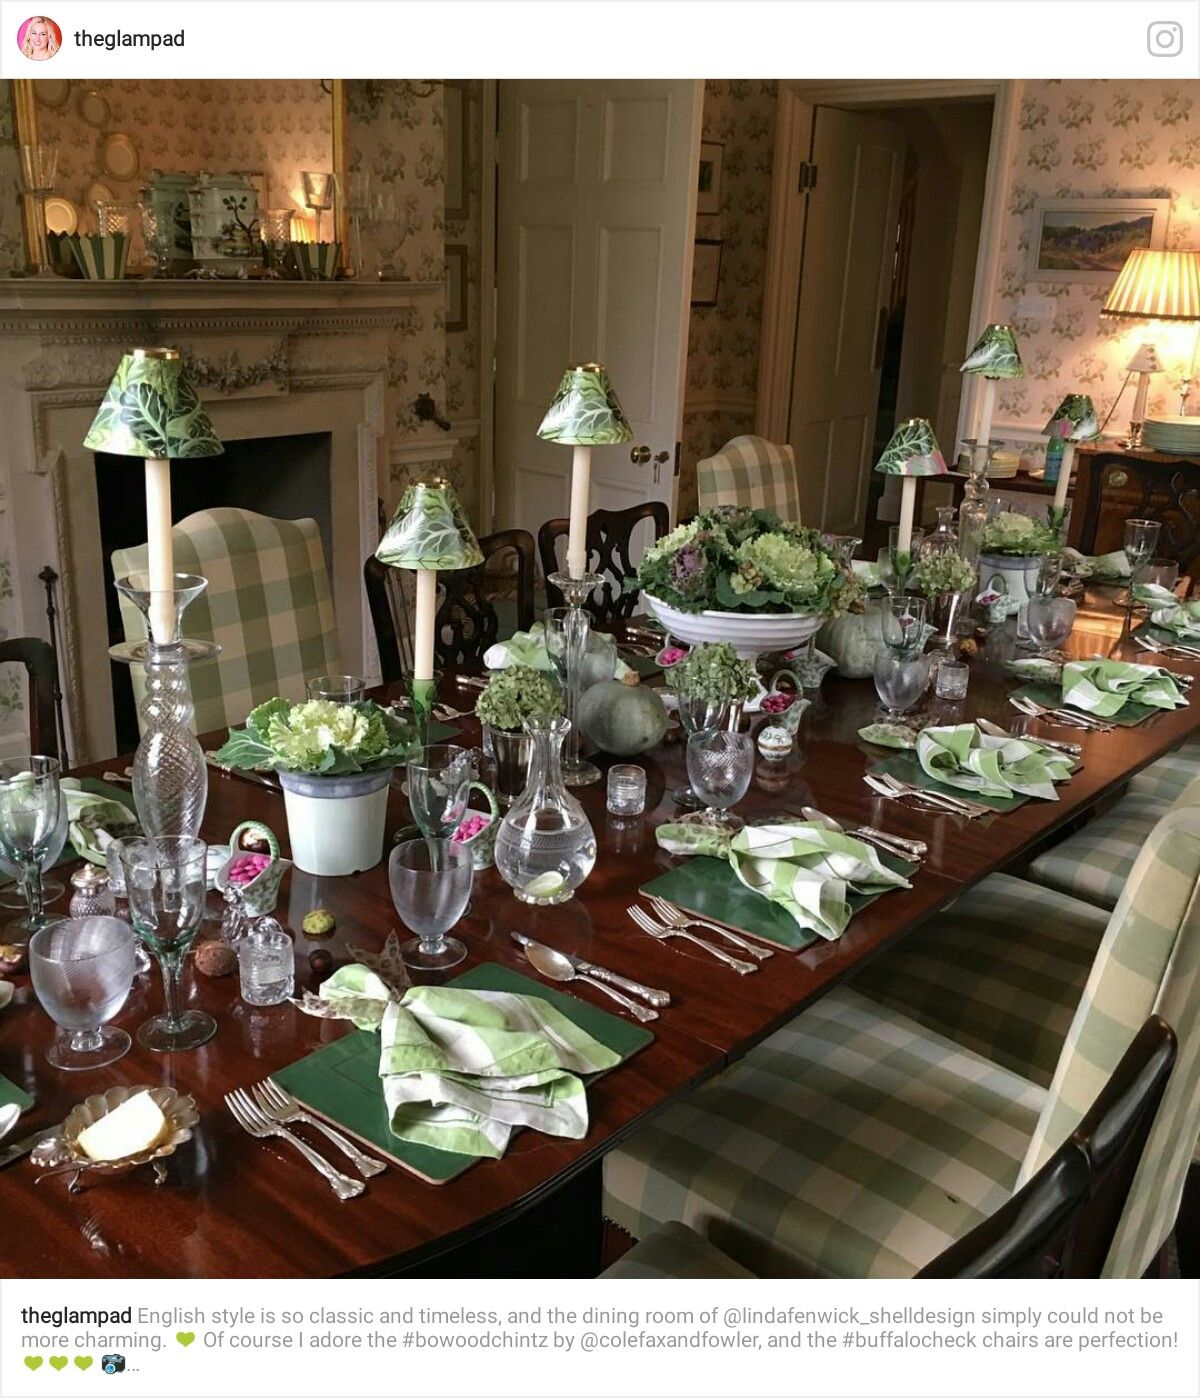 Cheerful Green and White Table Setting Linda Fenwick & Pin by Madeleine Rackley on Beautiful Tables | Pinterest ...